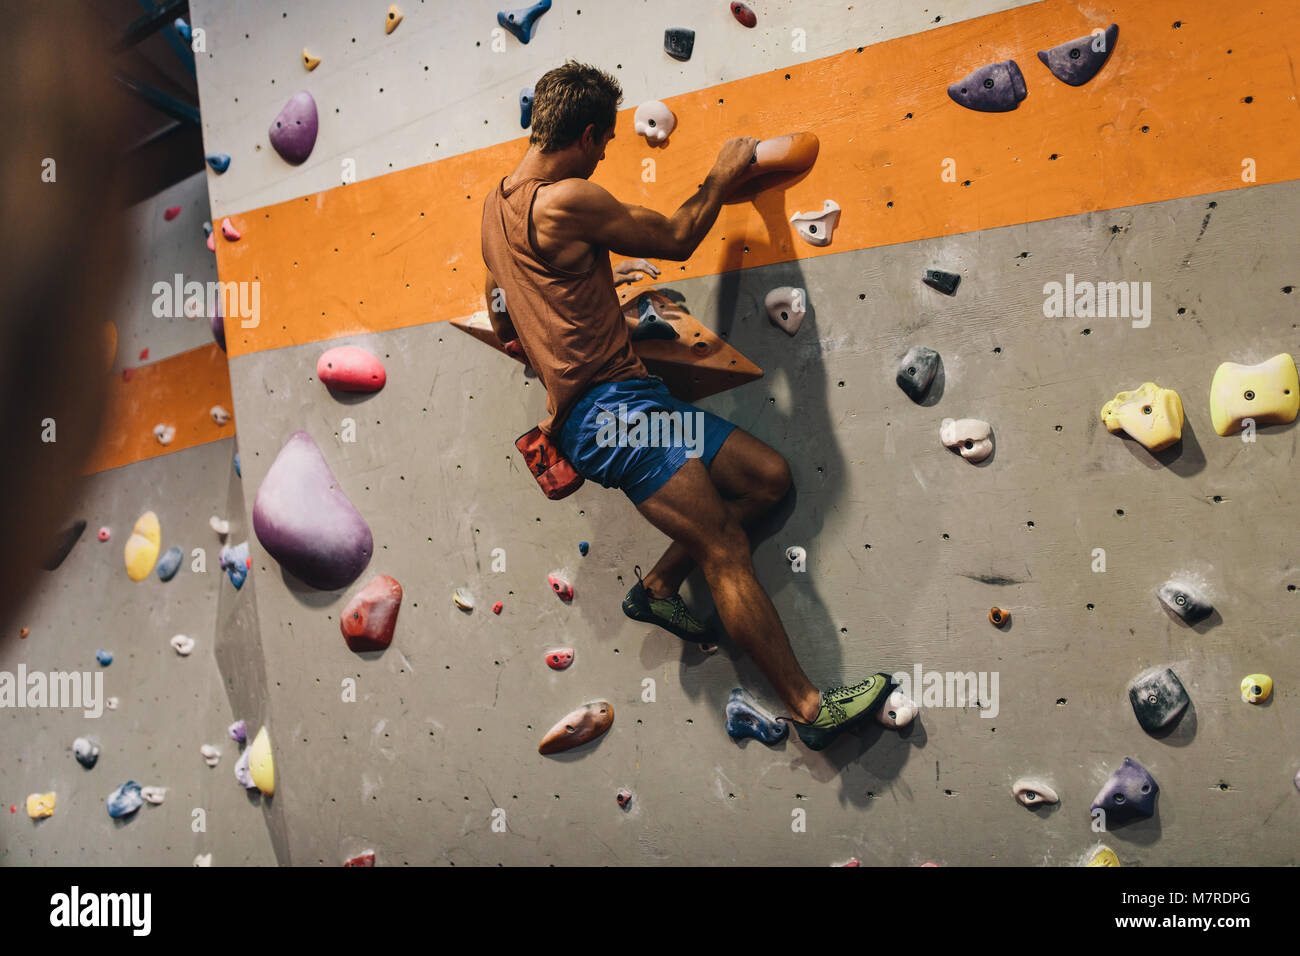 Man bouldering at an indoor climbing centre. Climber practicing rock climbing at an indoor climbing gym. - Stock Image